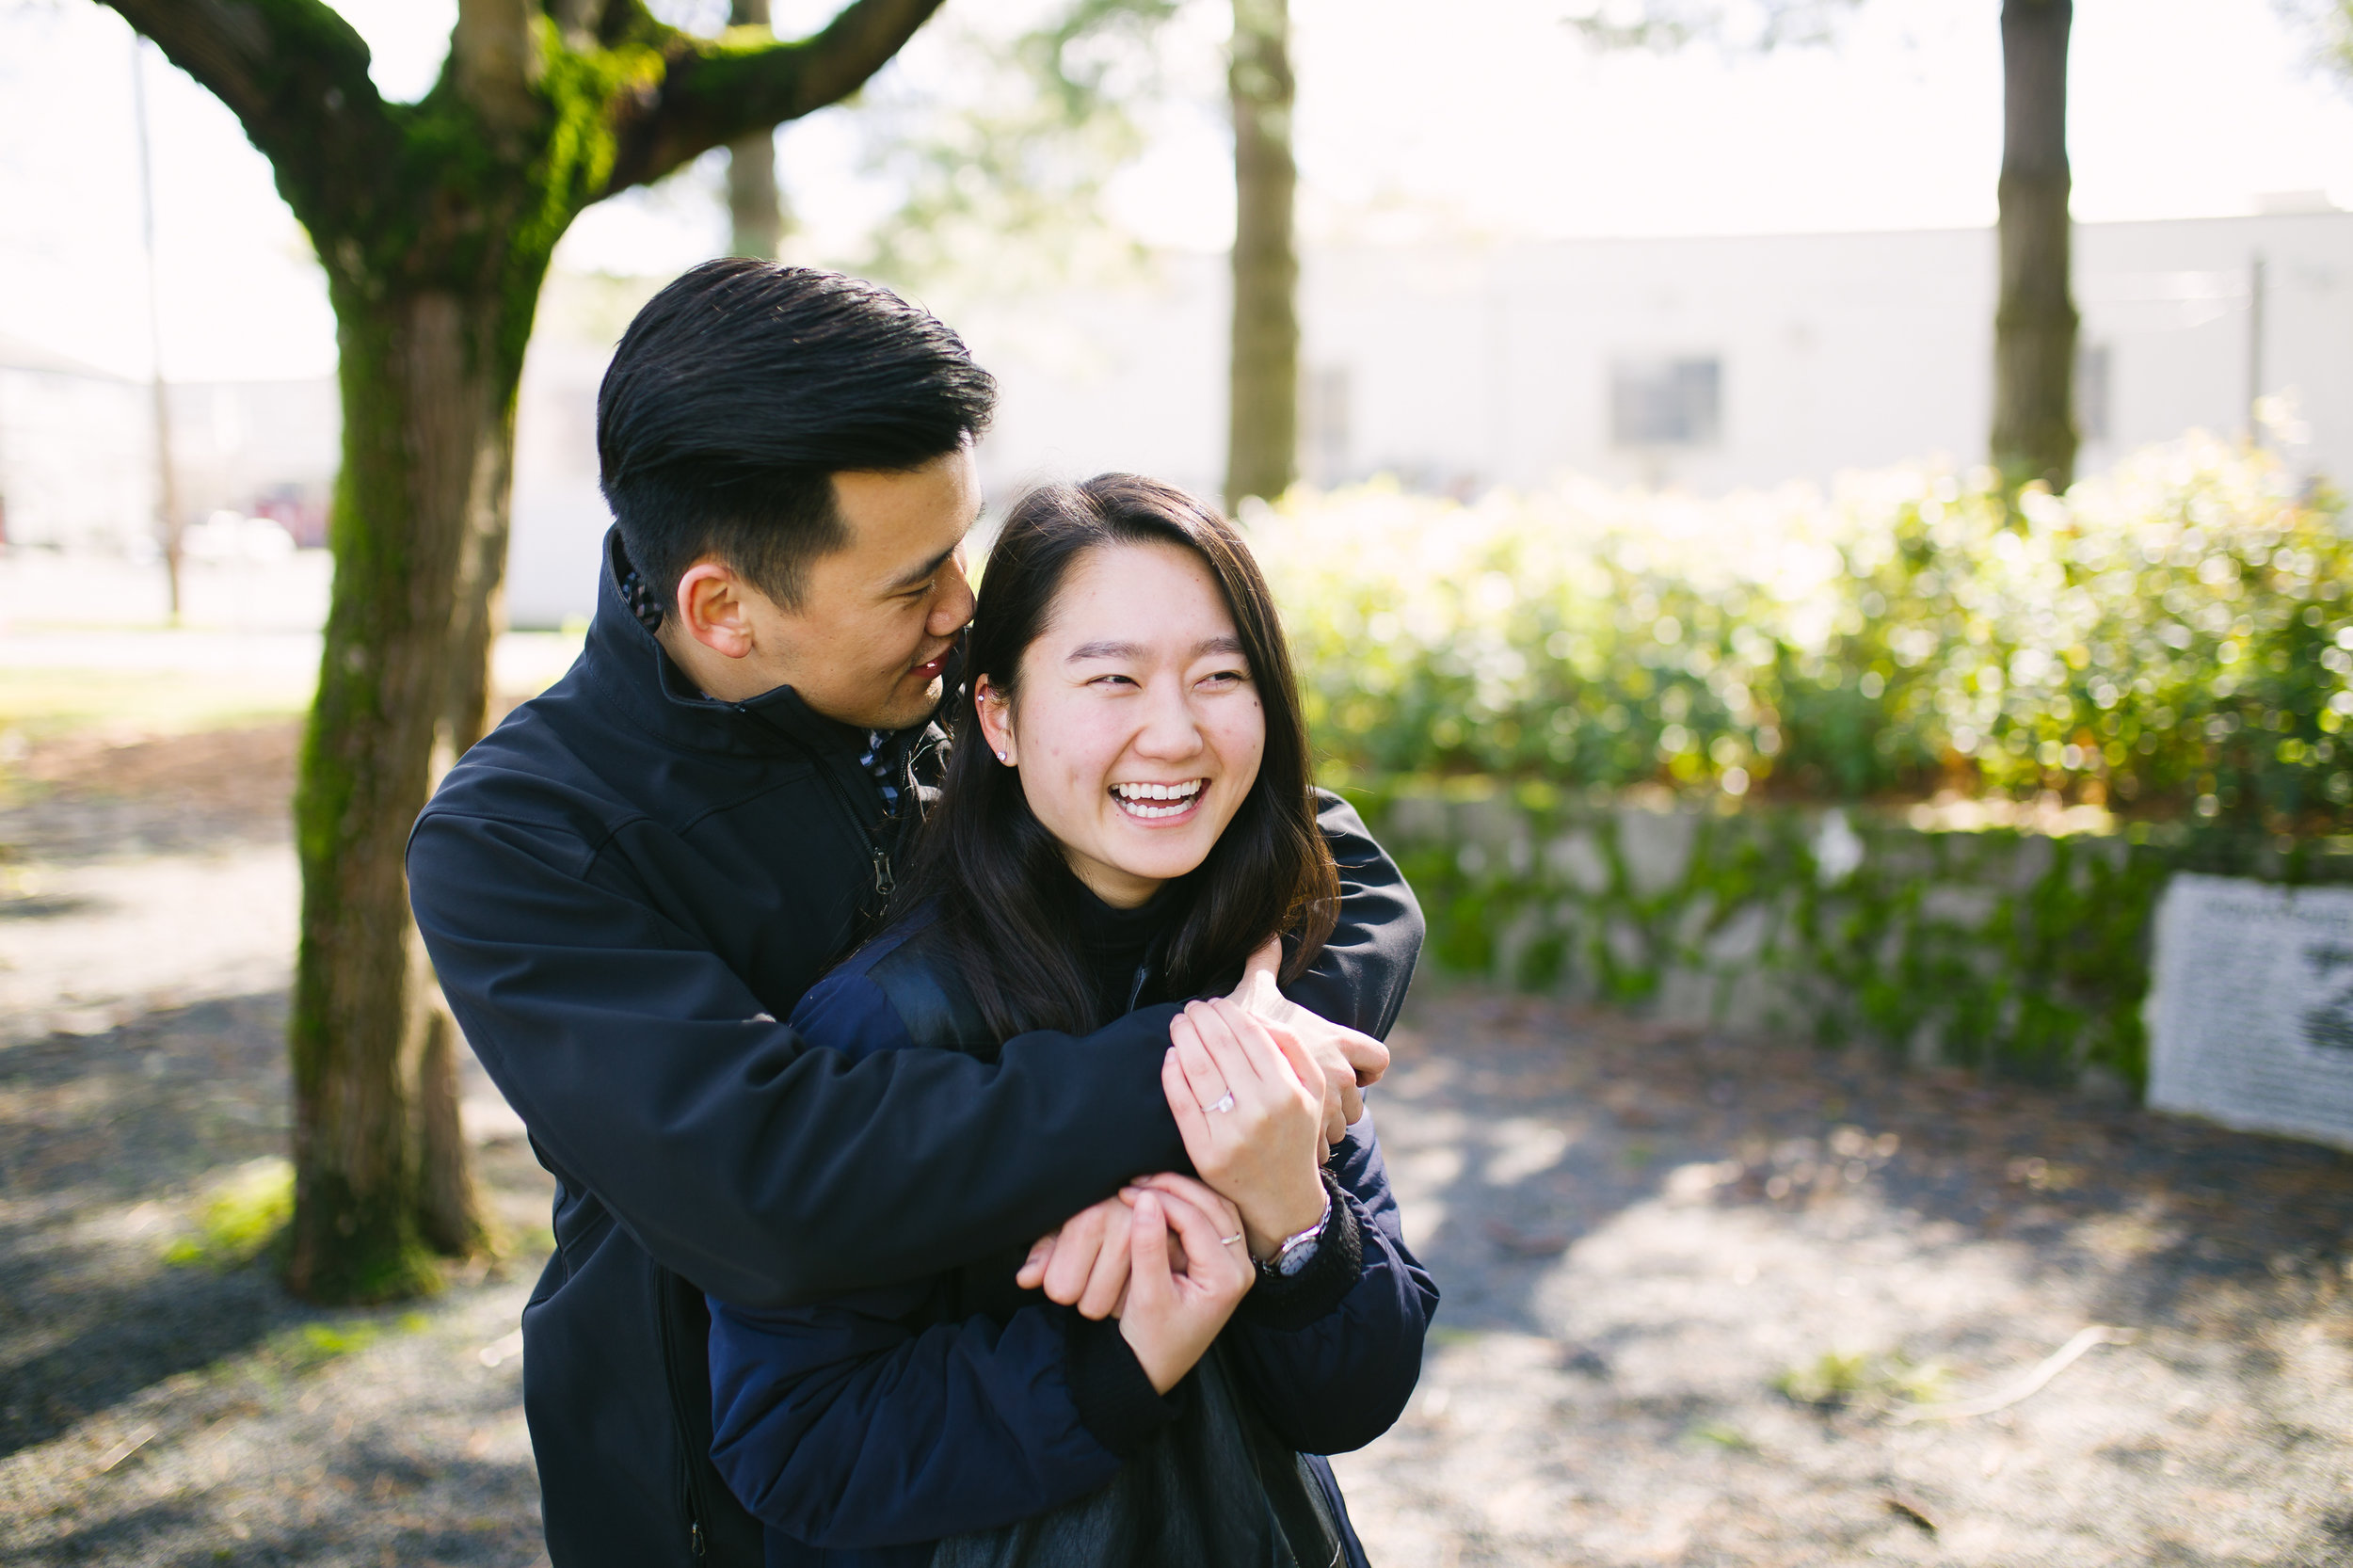 cathedral-park-engagement-photography-7.jpg